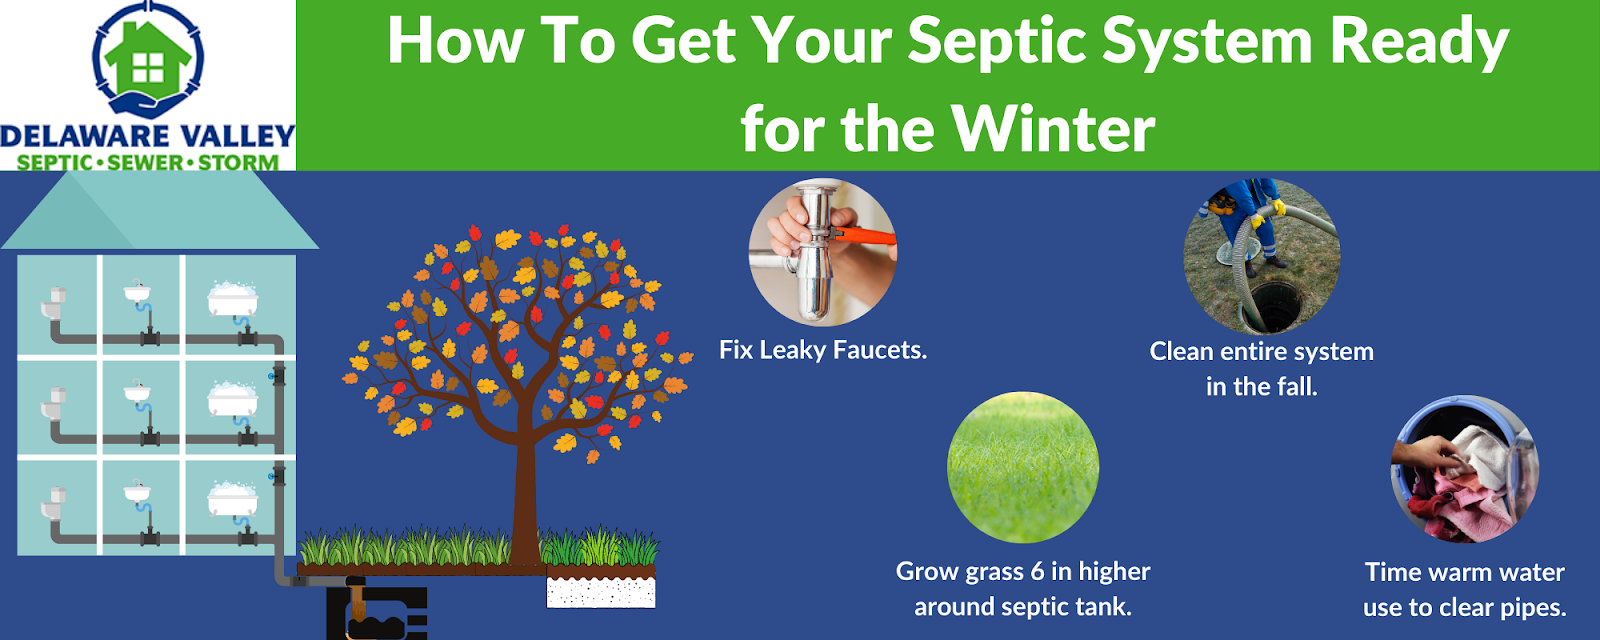 Infographic explaining ways to care for septic systems before winter.